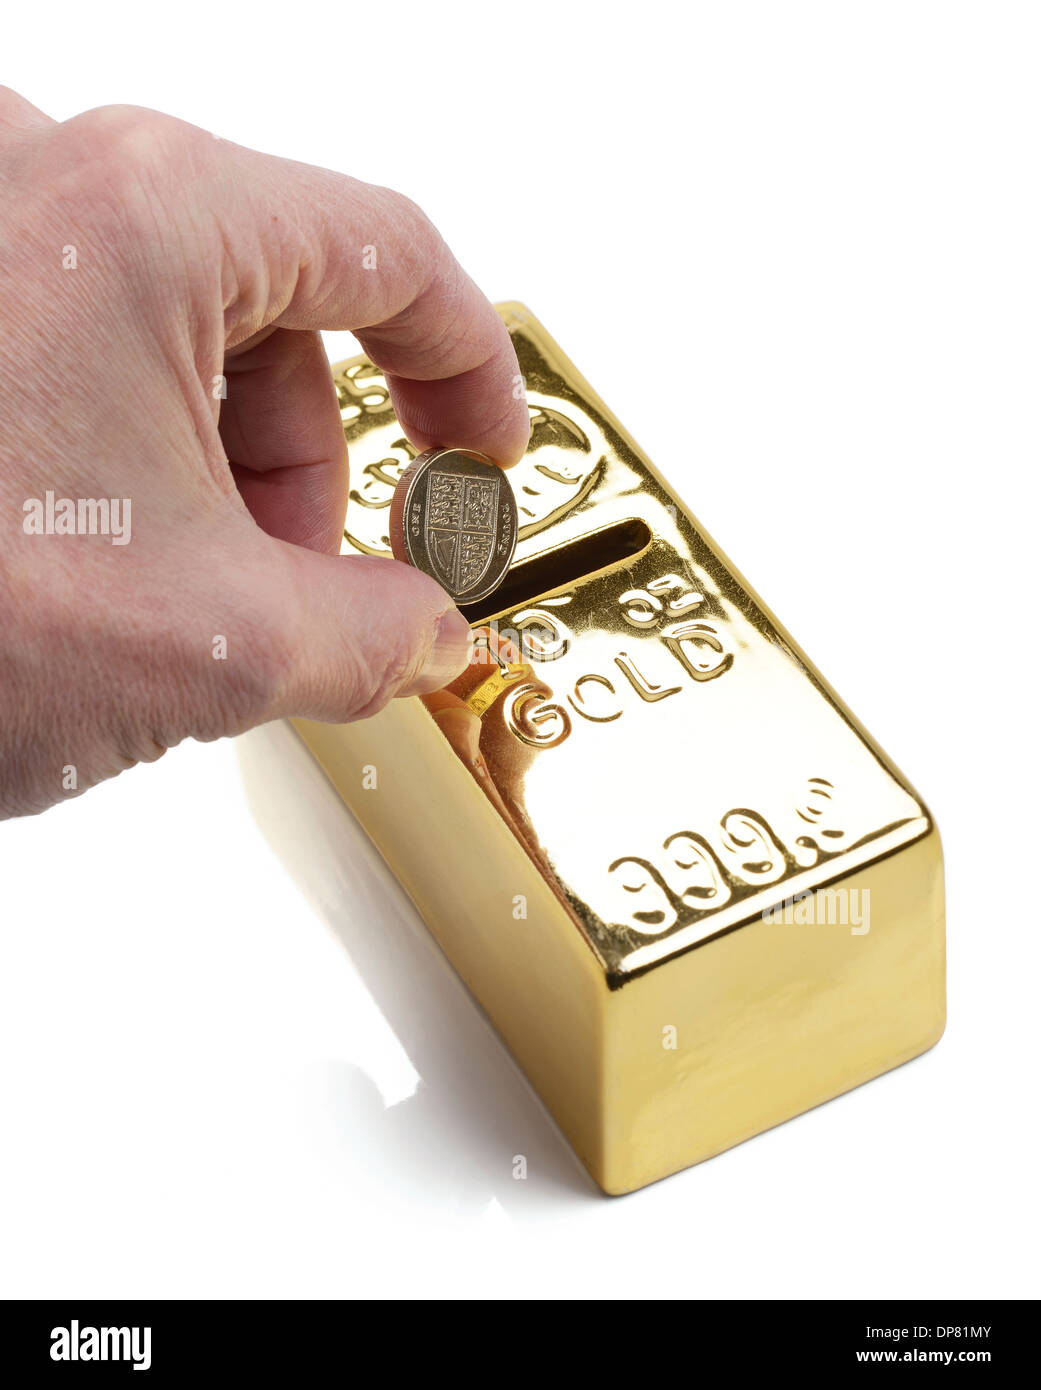 Investing money in to gold - Stock Image